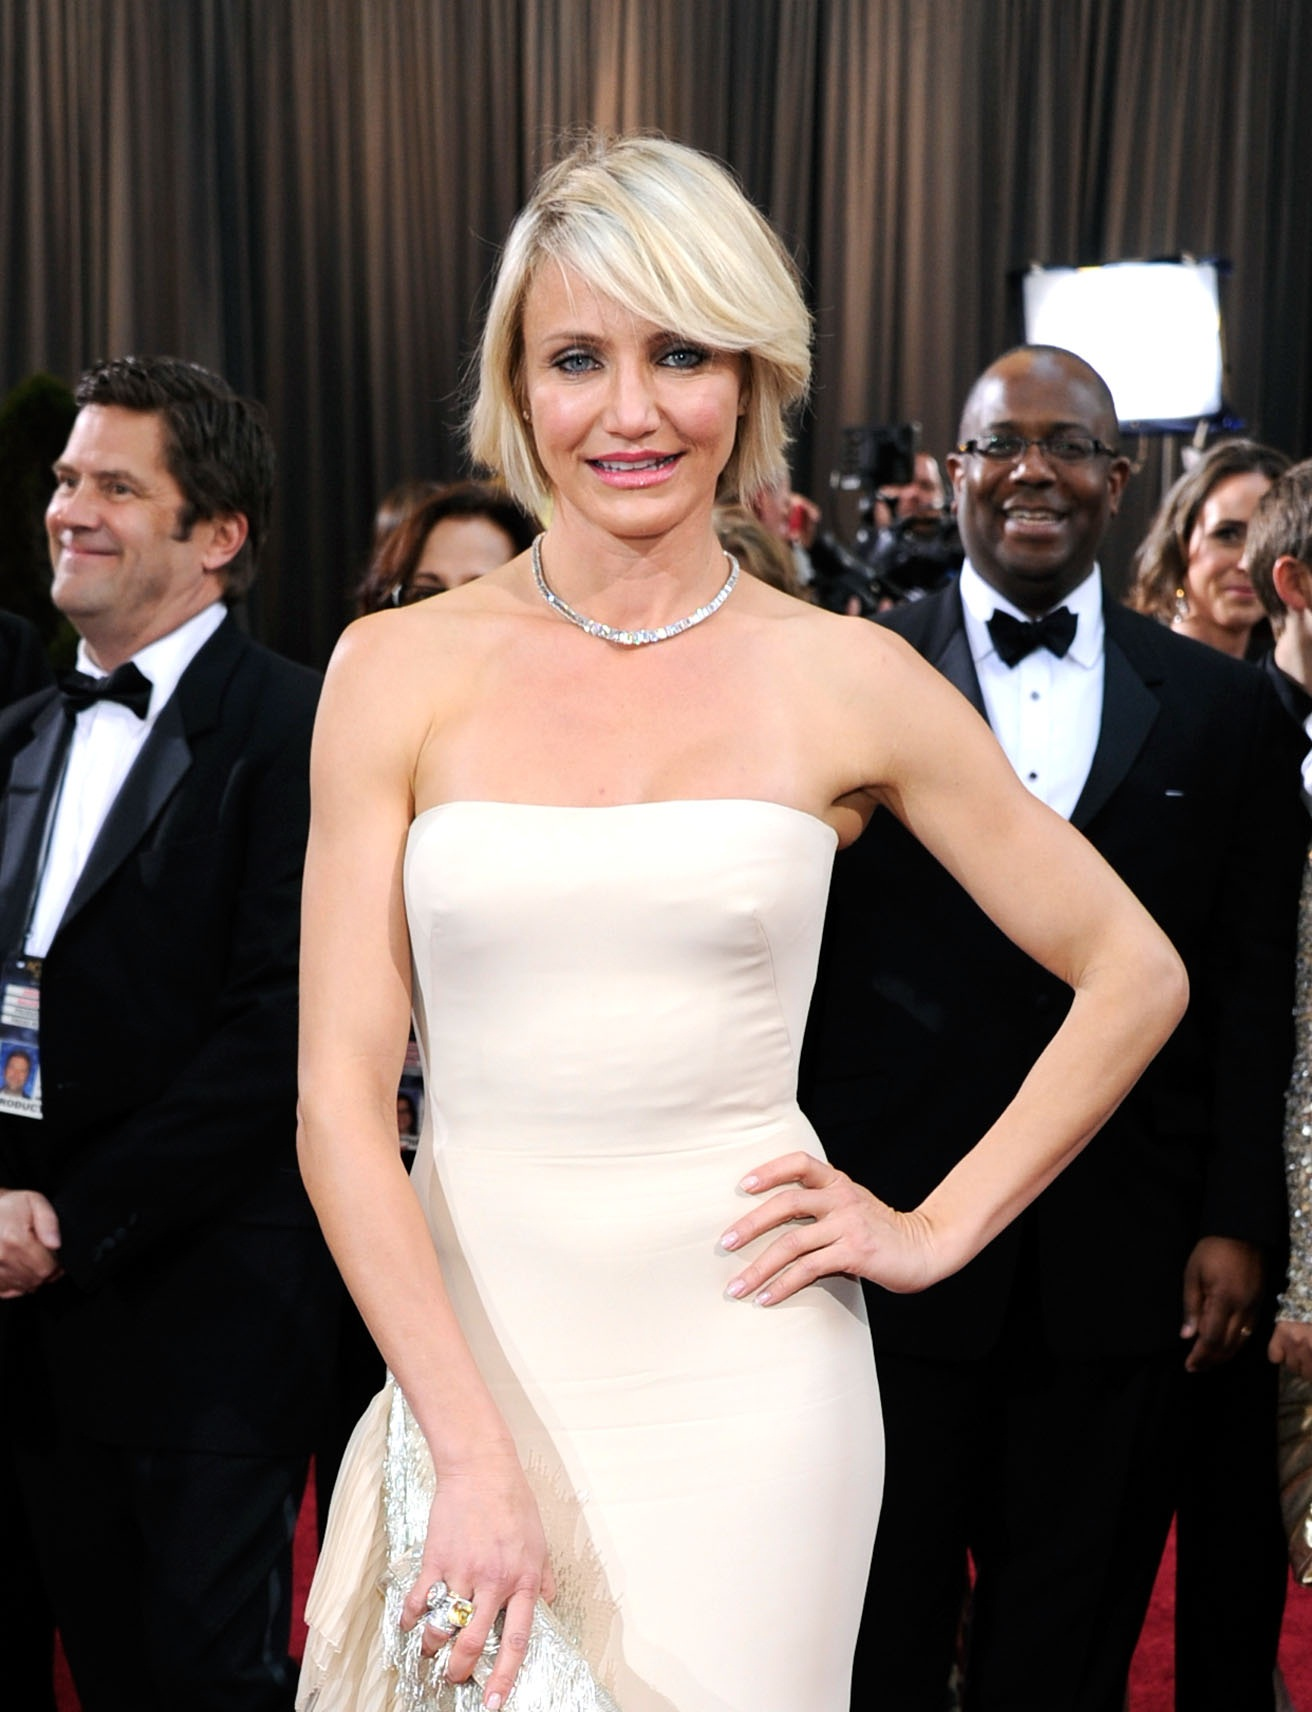 Cameron Diaz Age, Height, Net Worth, Husband, Sister, Children